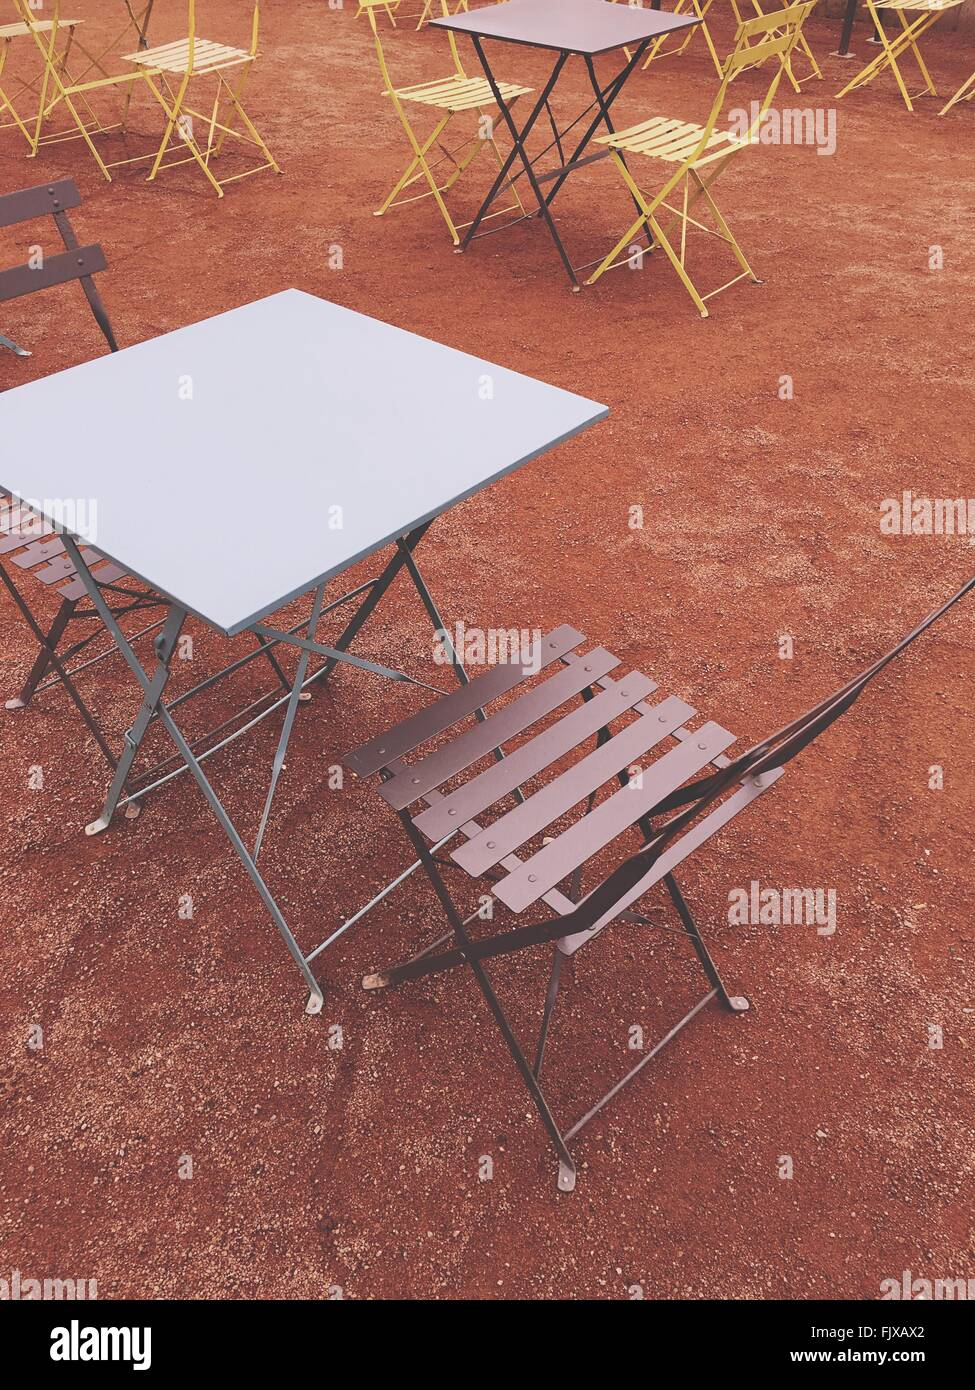 High Angle View Of Empty Chairs And Tables At Sidewalk Cafe - Stock Image